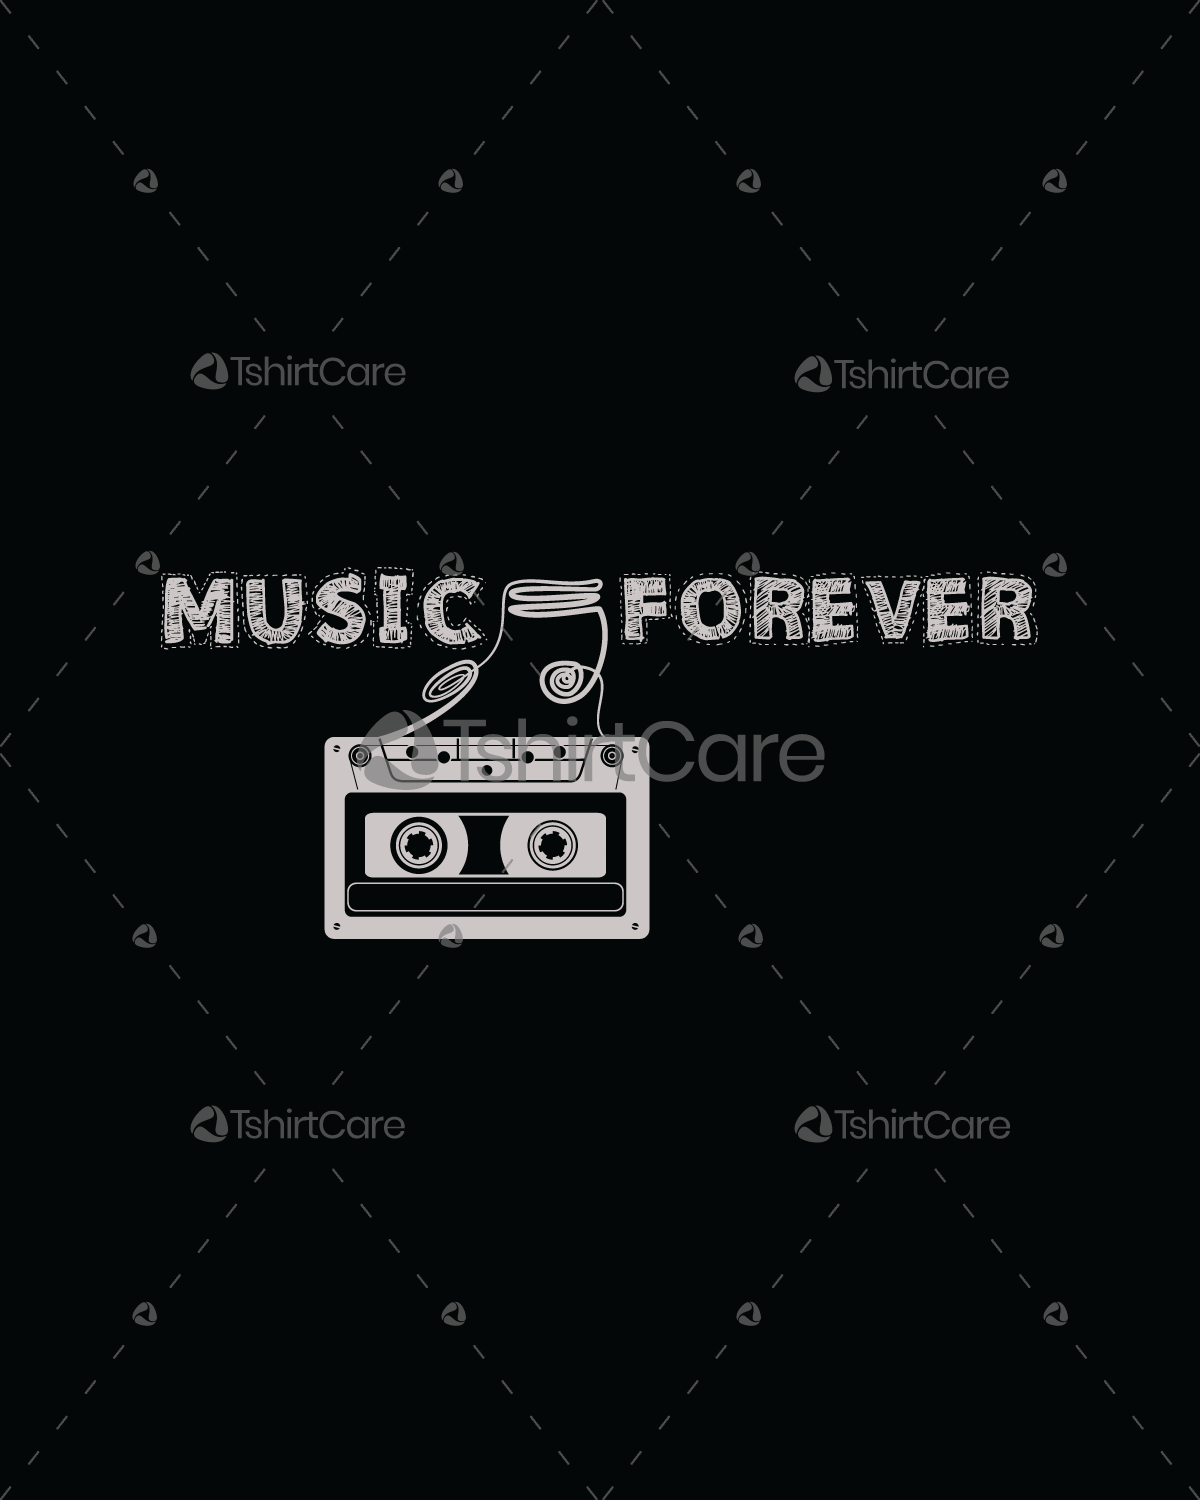 Cassette audio music Tape lovers T shirt design music forever Analog Old  School Music Geek tee & hoodie design gift - TshirtCare